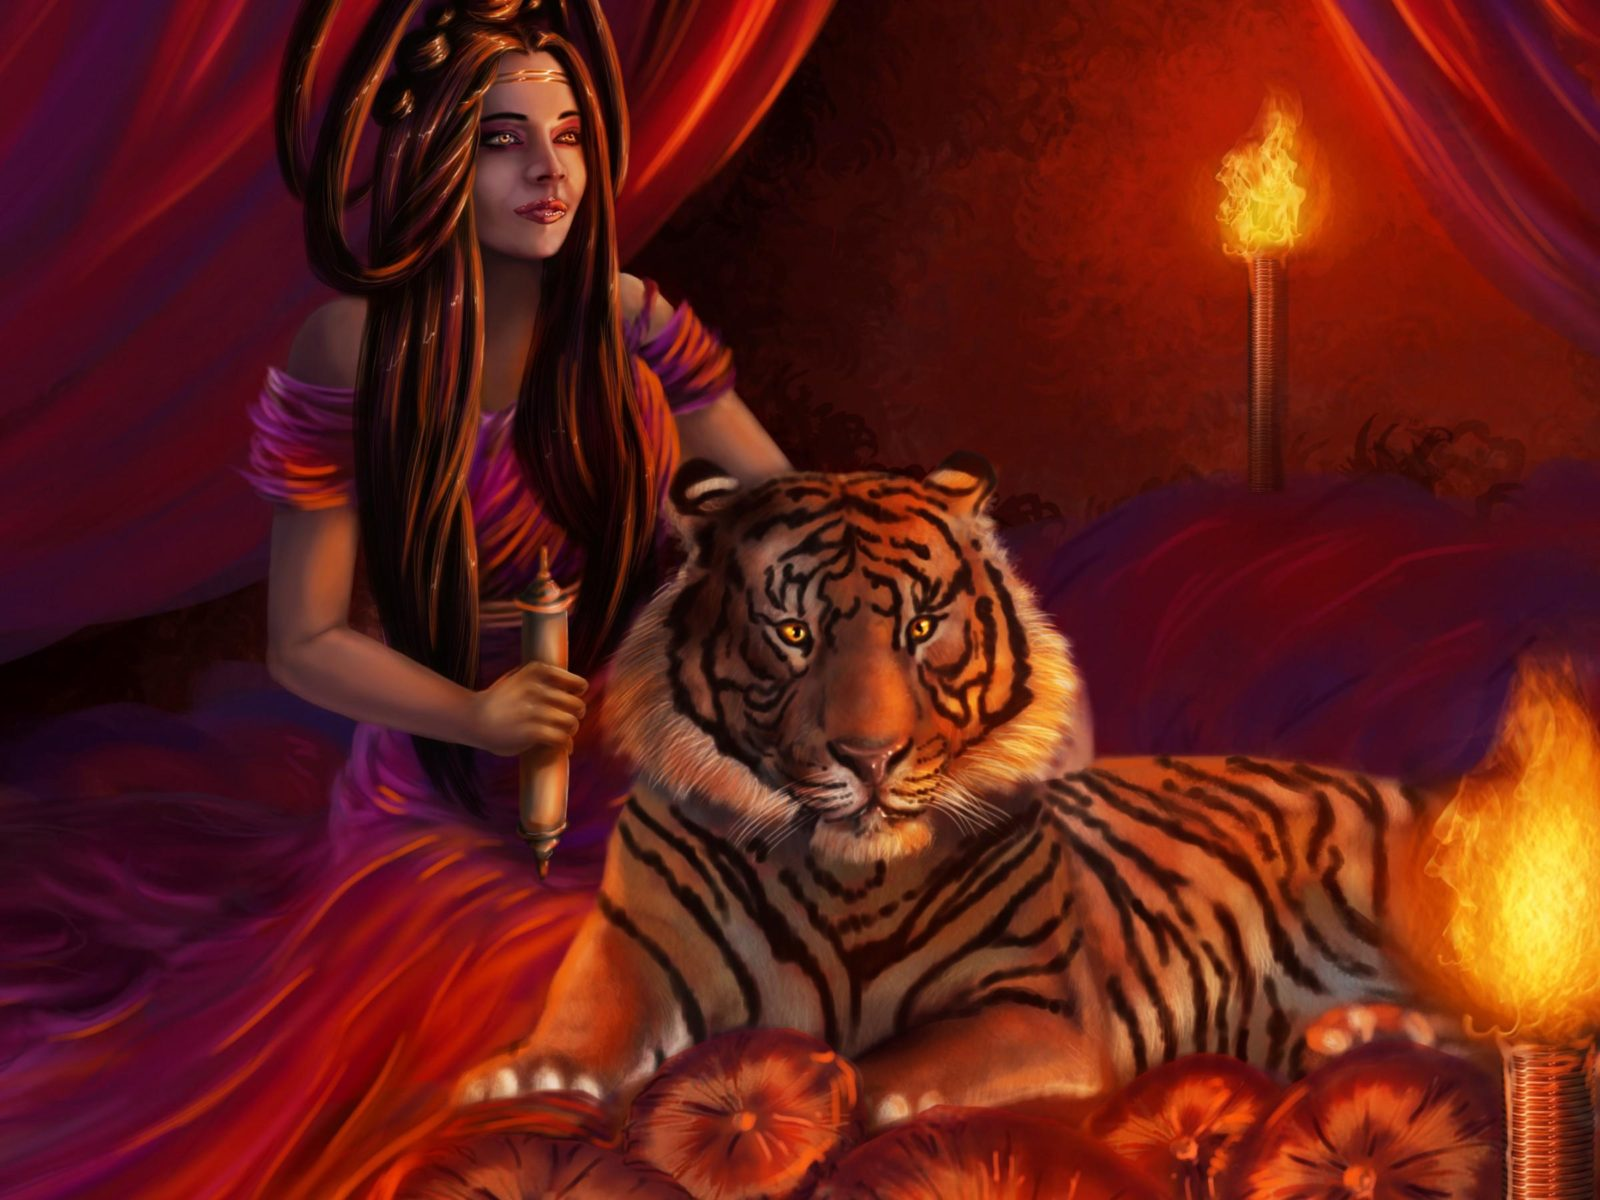 Red Dragon Girl Wallpaper Woman With Tiger 1476479 Wallpapers13 Com